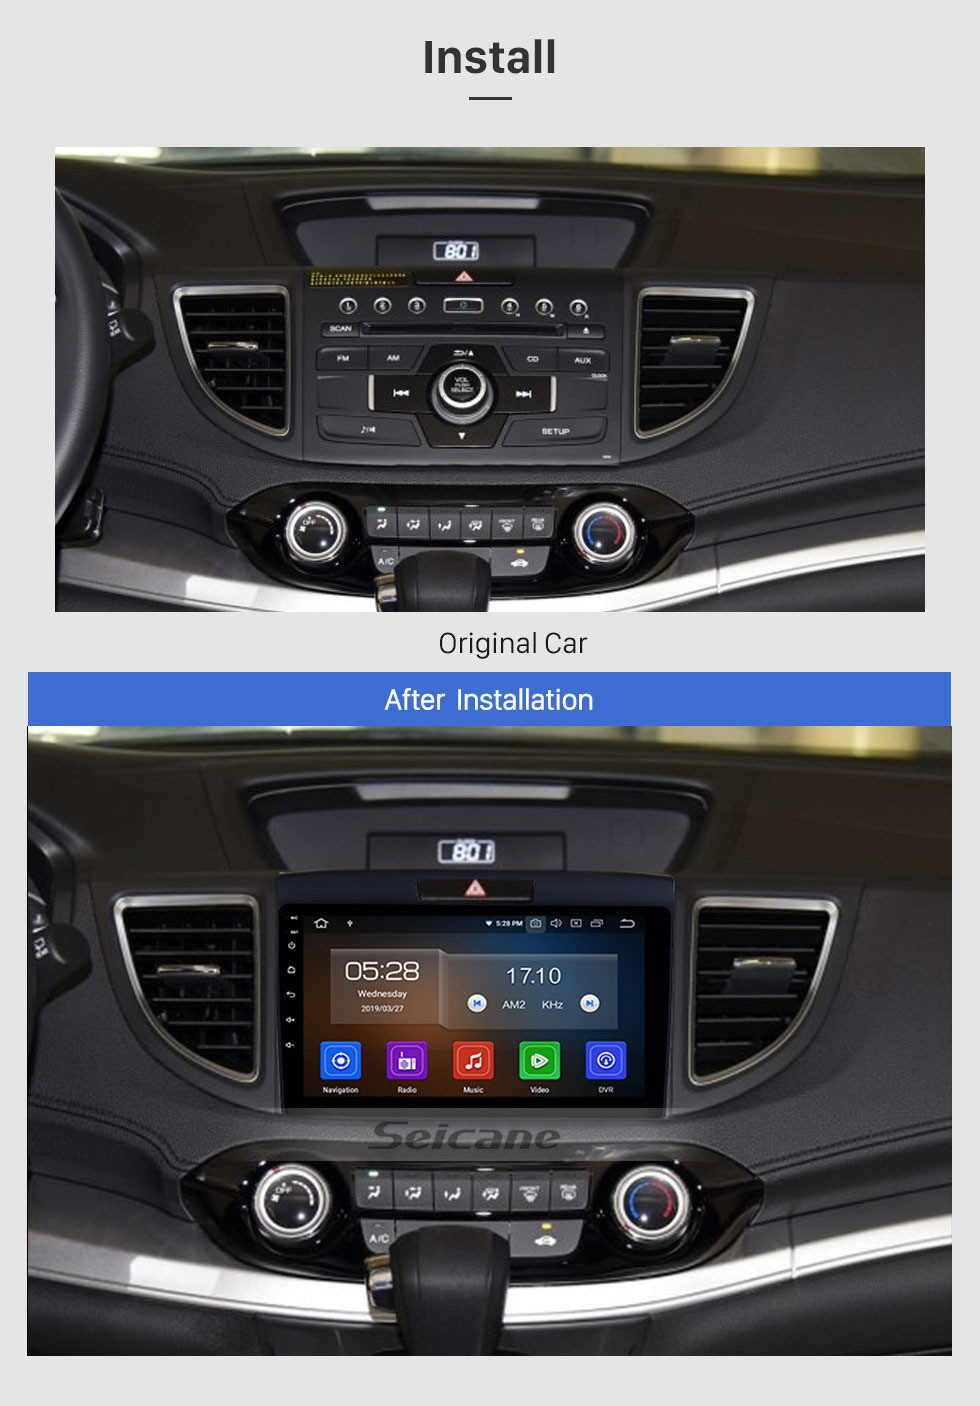 Seicane All in one 2011 2012 2013 2014 2015 Honda CRV Android 10.0 CD DVD Radio GPS Navigation system Bluetooth Music Audio USB WIFI Support Aux TPMS DVR 1080P Video Steering Wheel Control